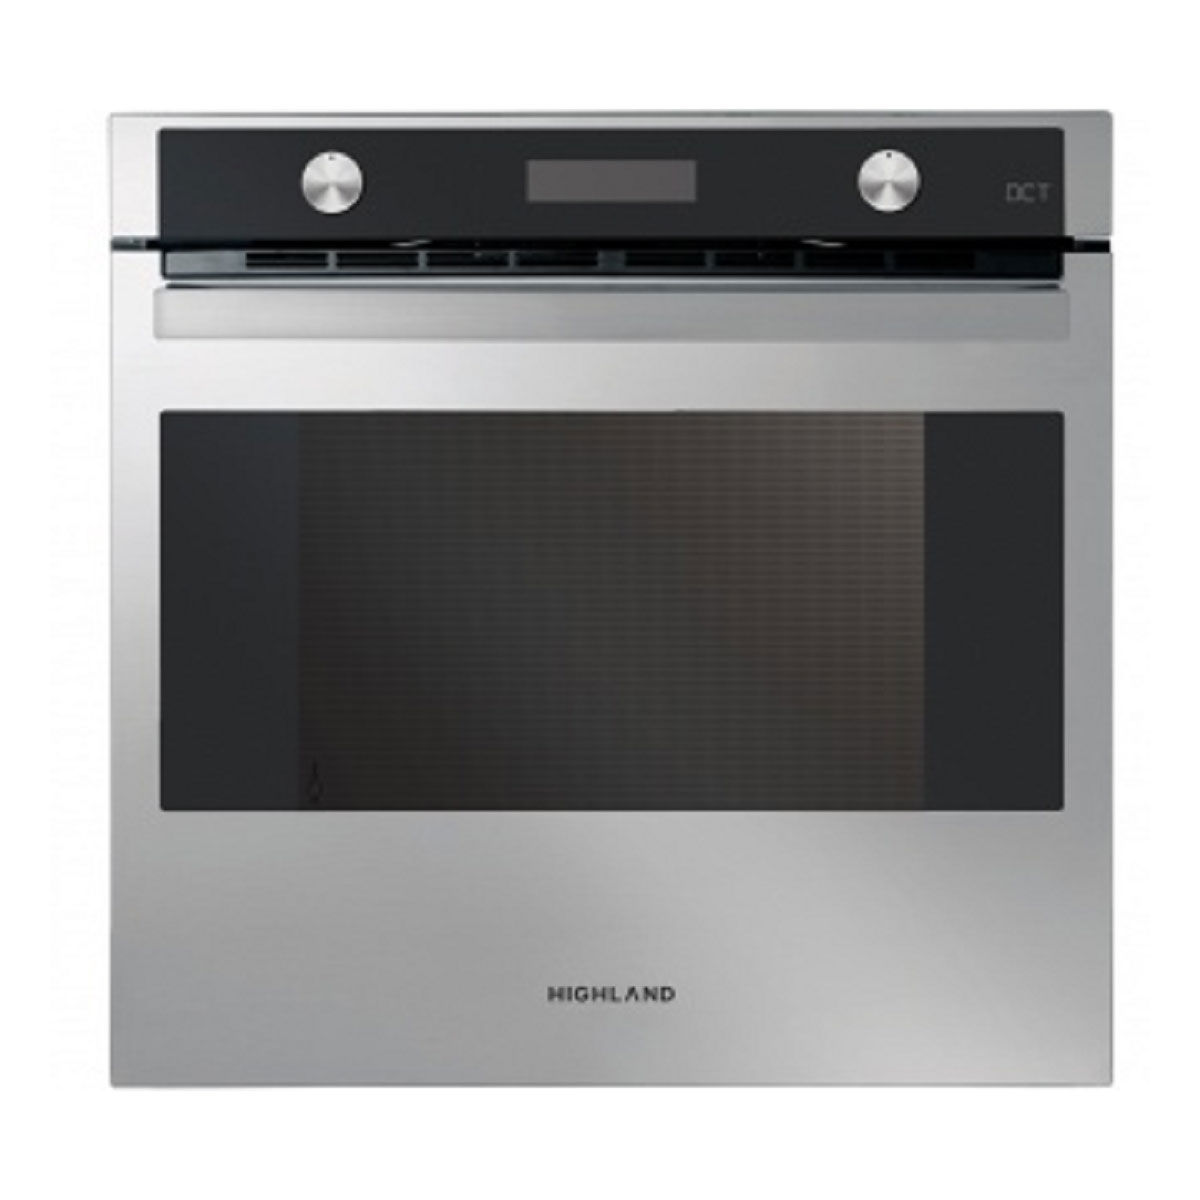 Uncategorized Kitchen Appliances Adelaide highland ovens cooking home clearance appliances online hio60mdct 60cm oven